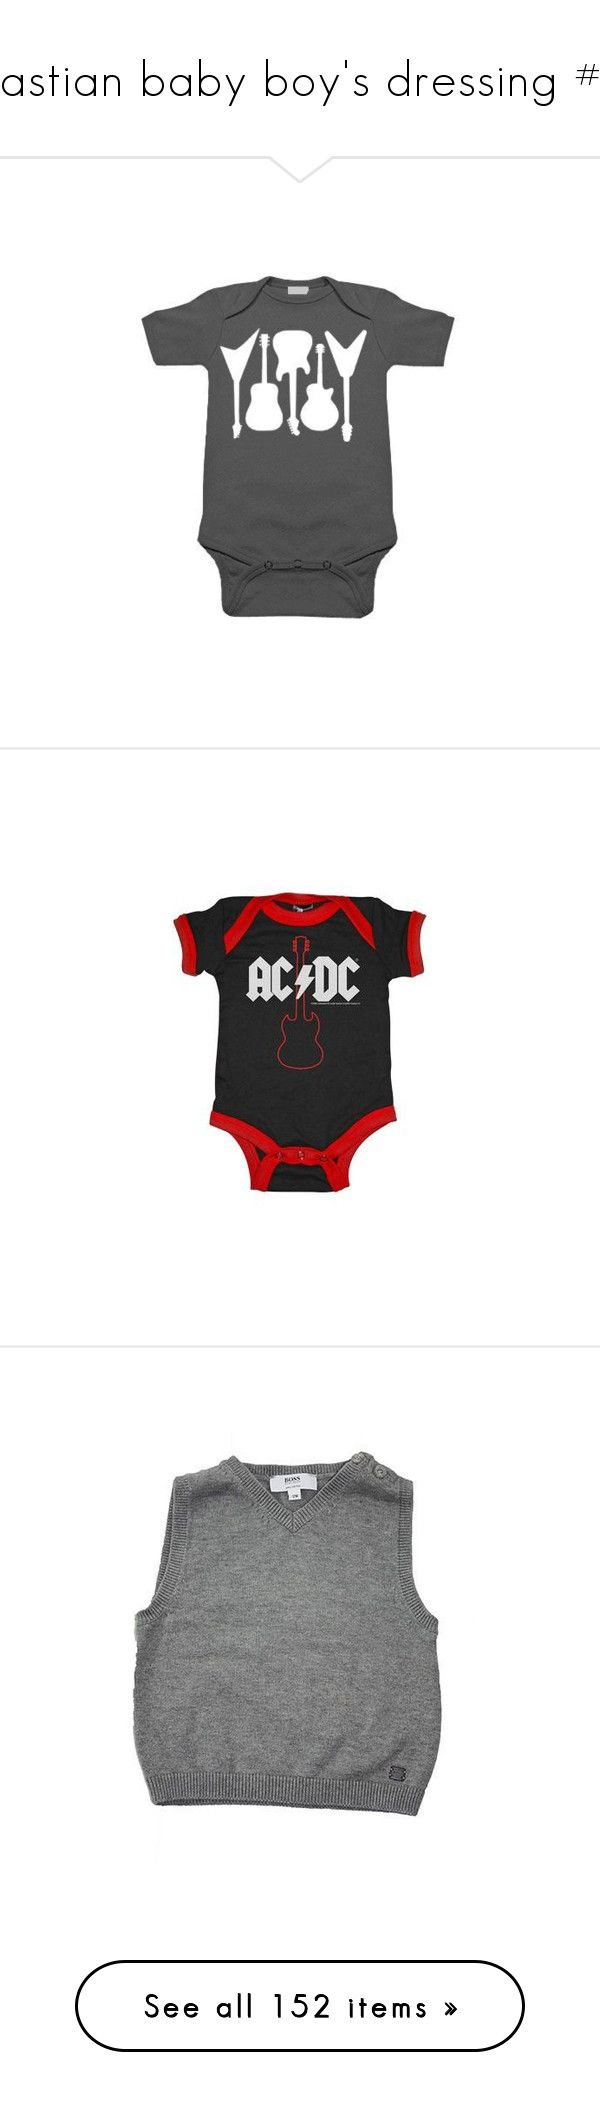 """""""Bastian baby boy's dressing #6"""" by zsugabubus ❤ liked on Polyvore featuring shoes, ferrari, cage shoes, ferrari shoes, cat shoes, wrap shoes, accessories, toys, baby and baby boy"""